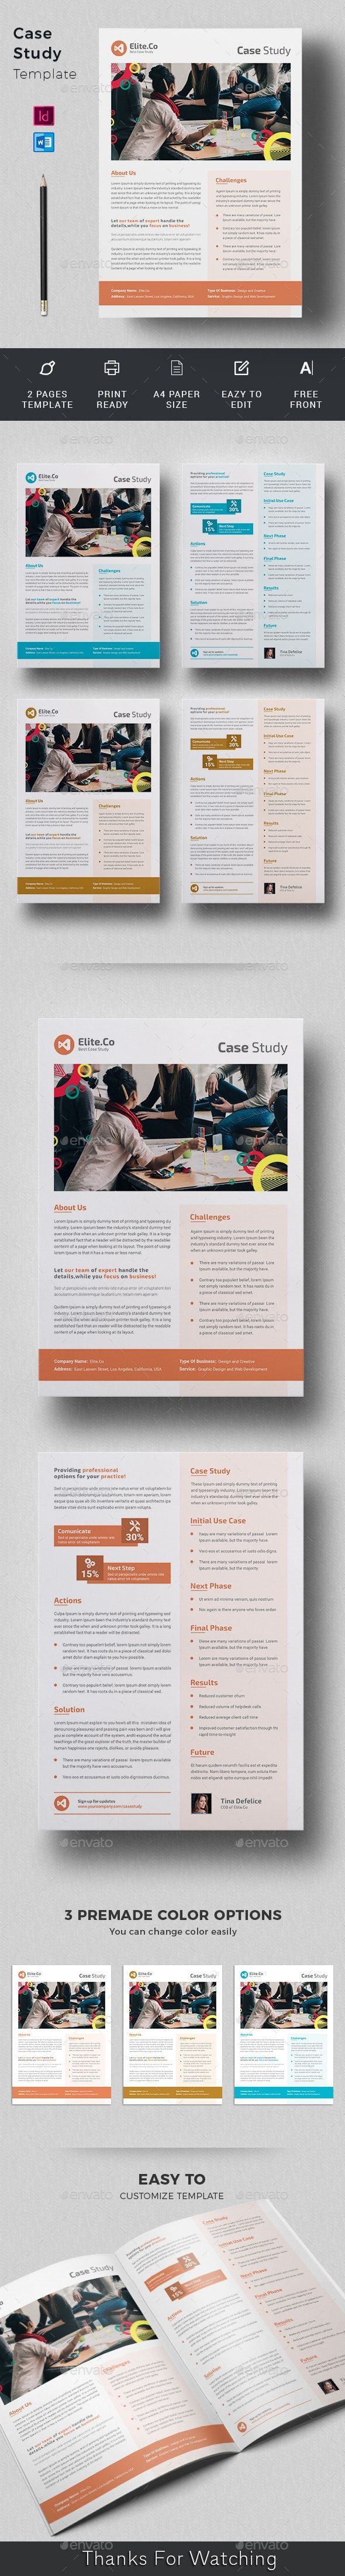 Pin On Case Study Templates